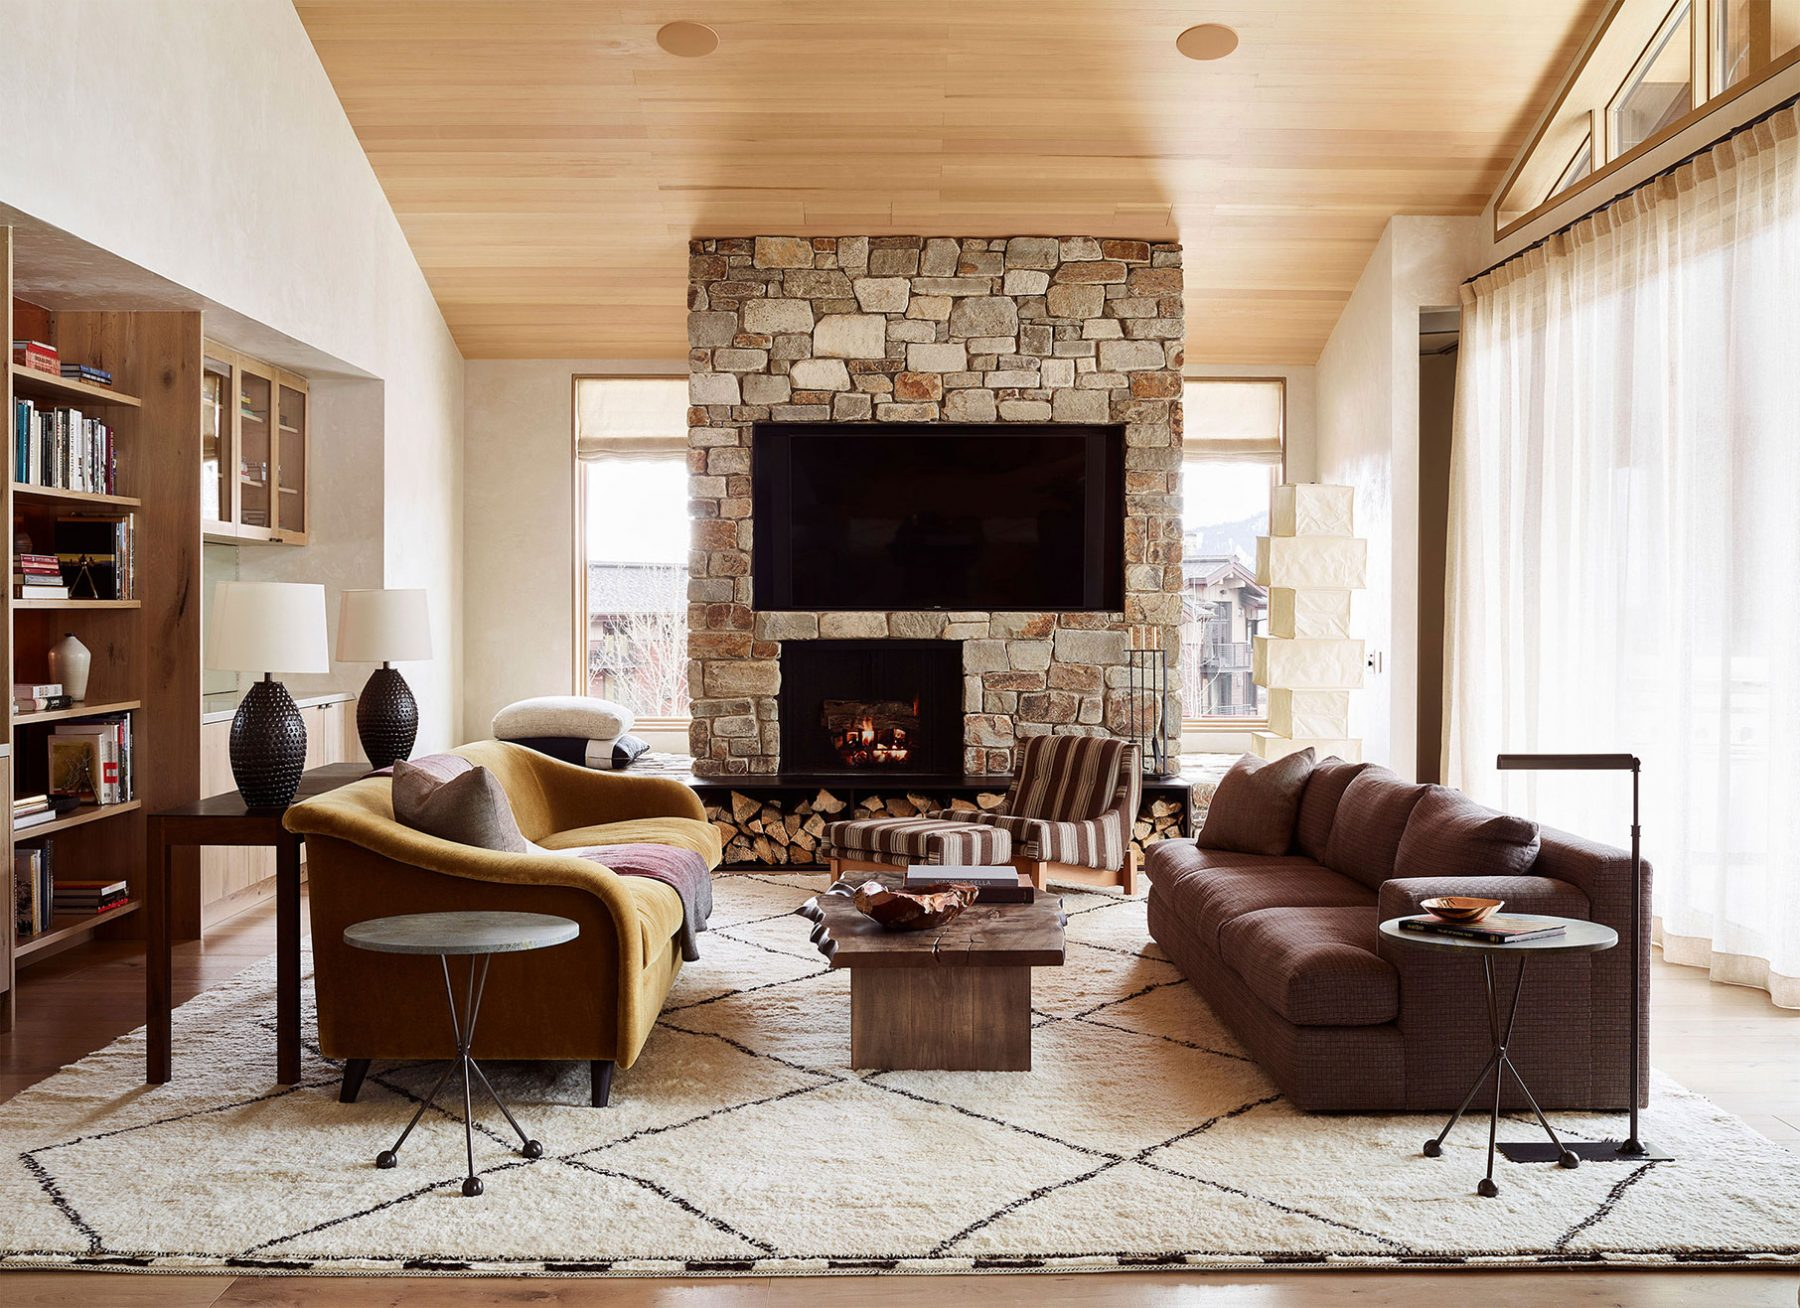 living area with fireplace - caldera house